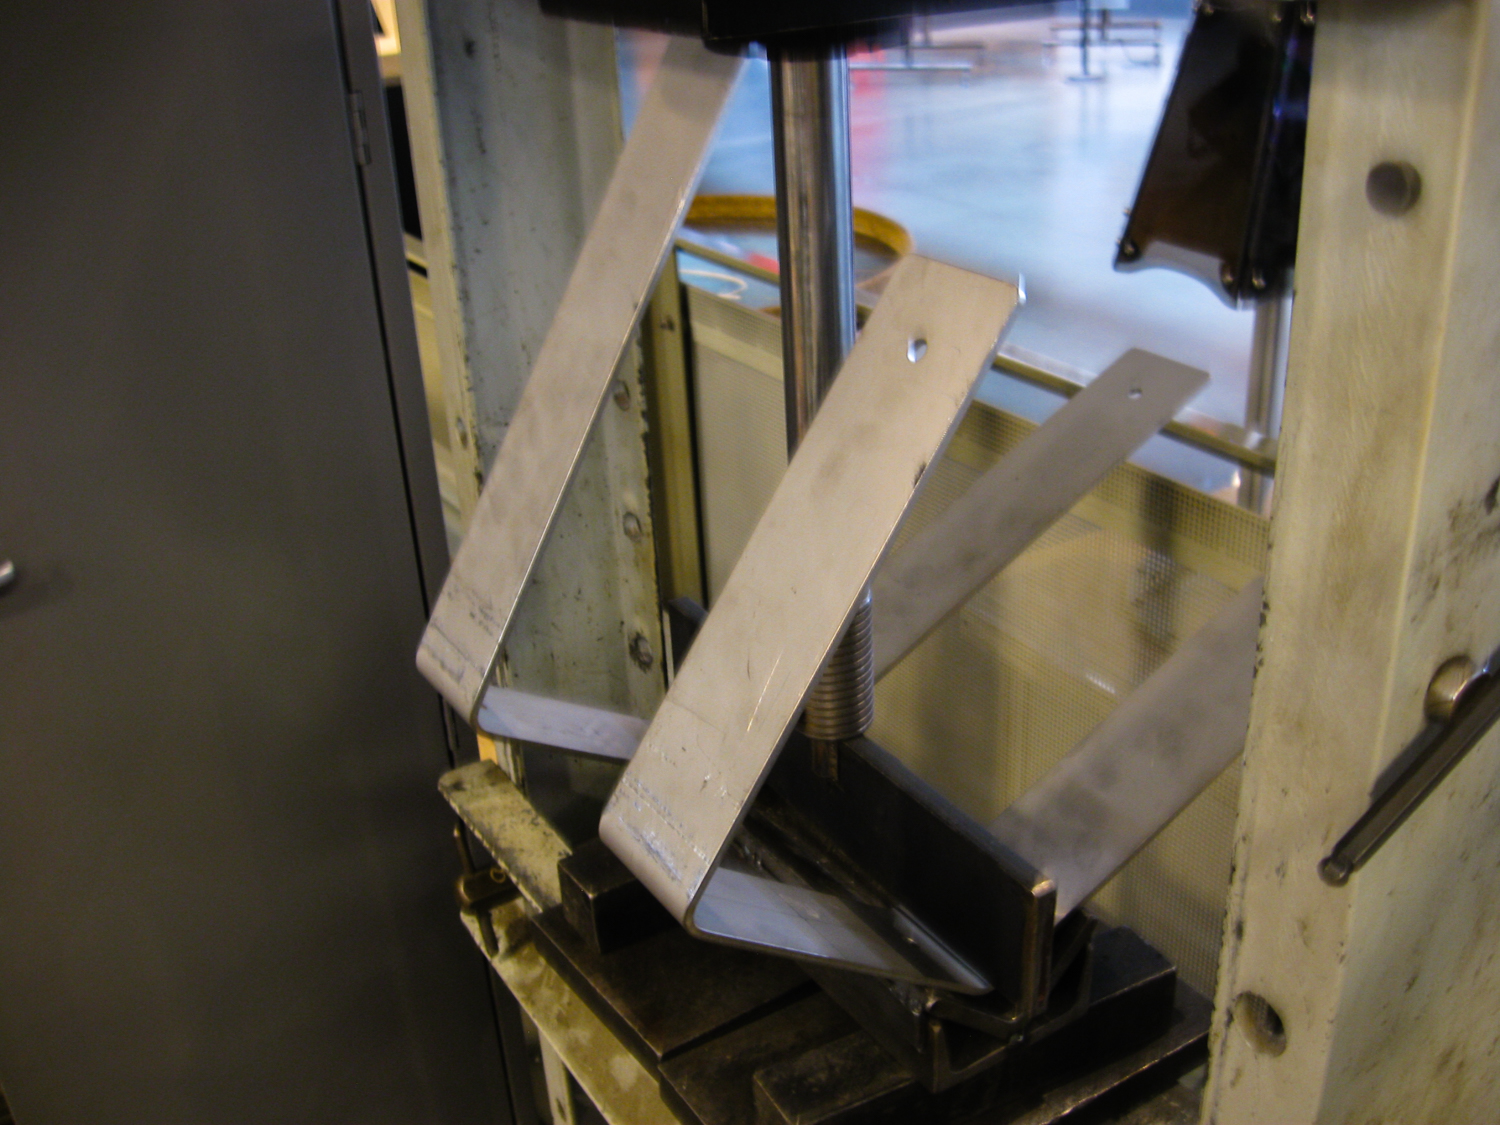 Bending the brackets that hold the chimes